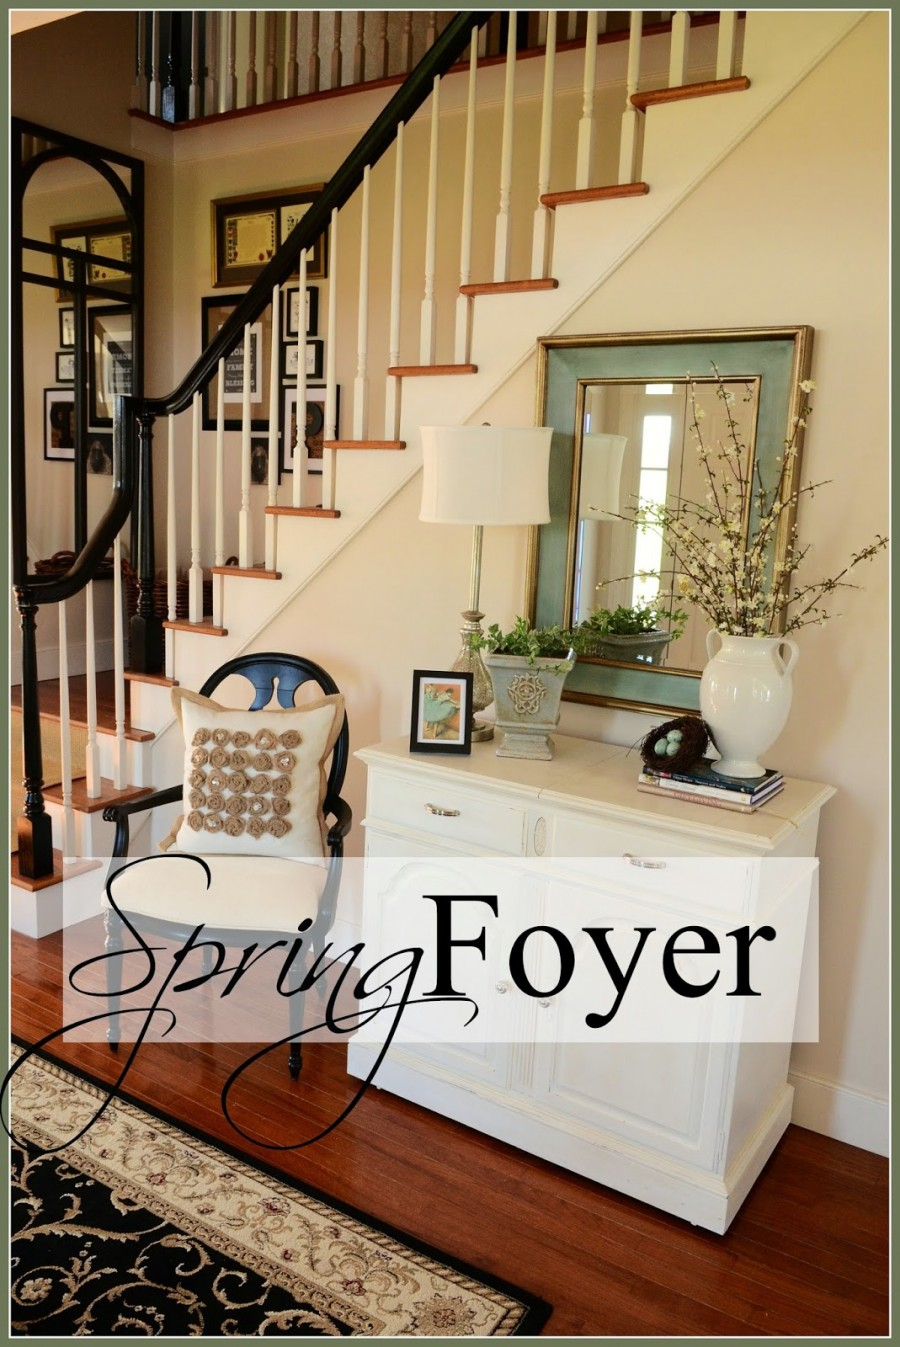 No Foyer Design : Spring foyer stonegable